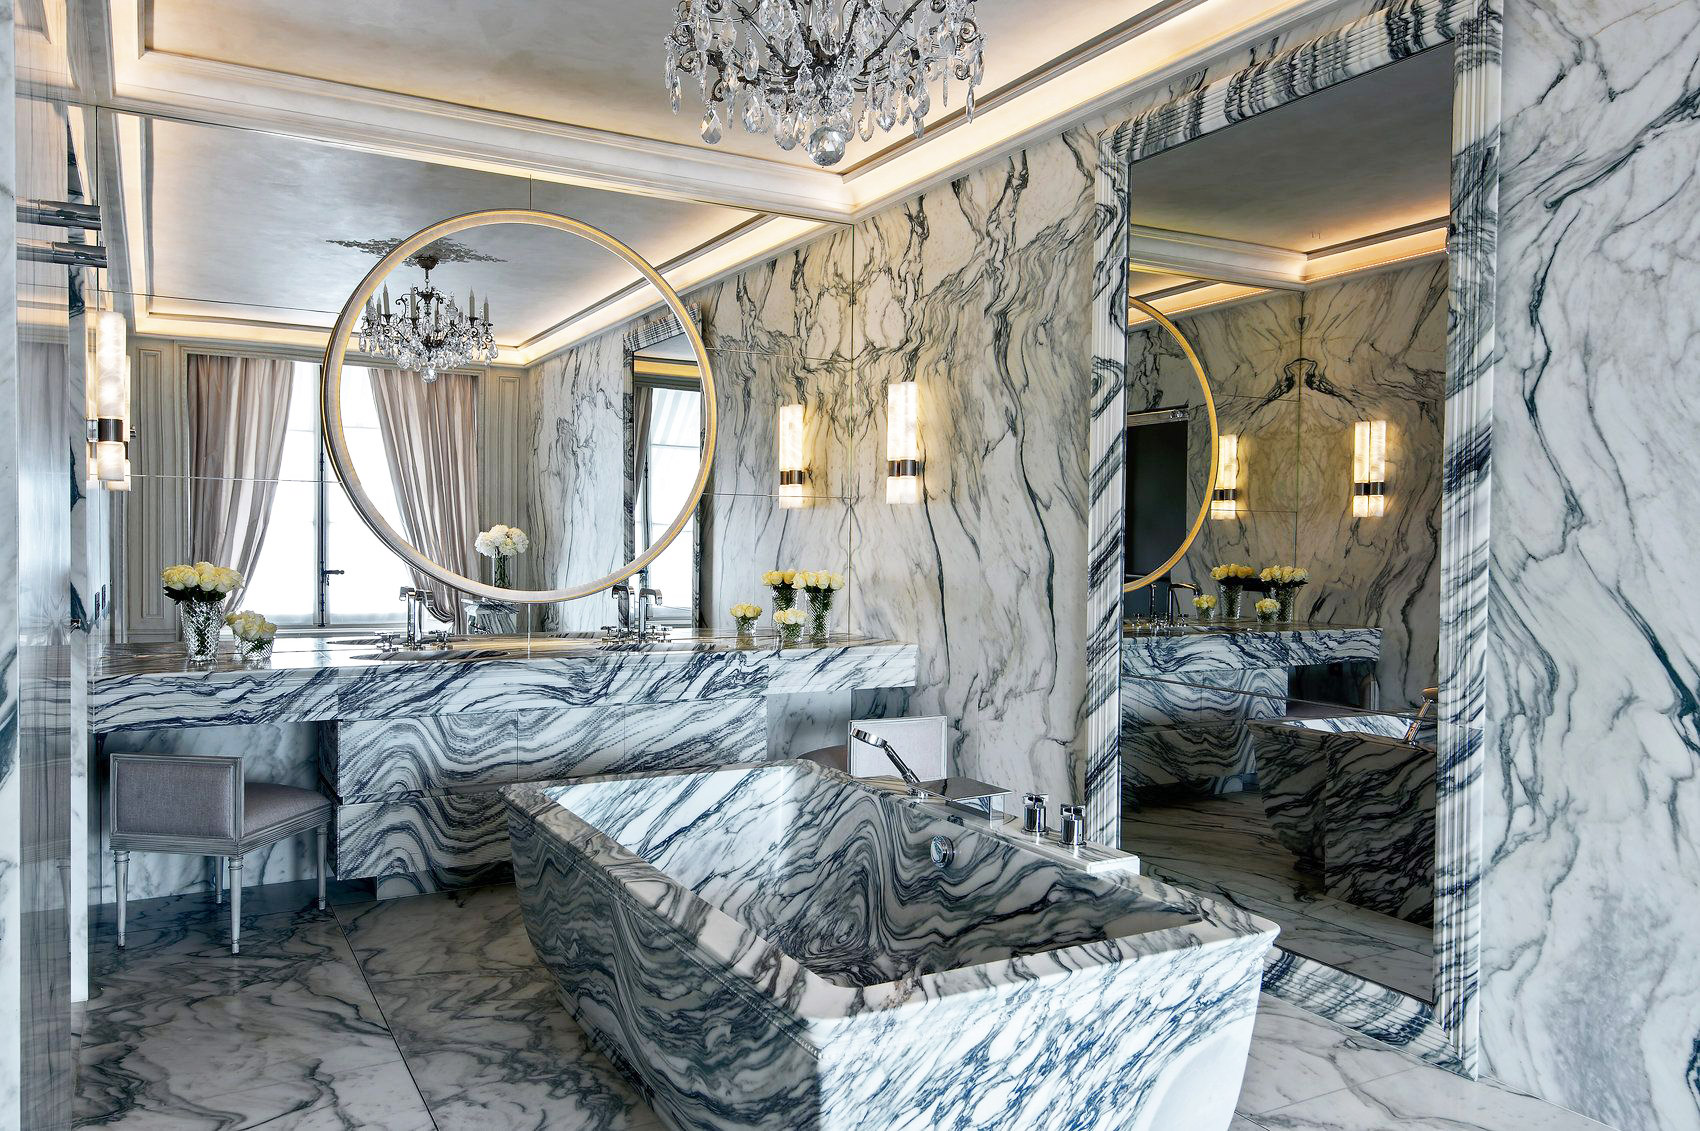 Each room in the residence offers stunning views of the Paris skyline, including from the Carrara marble bathtub.